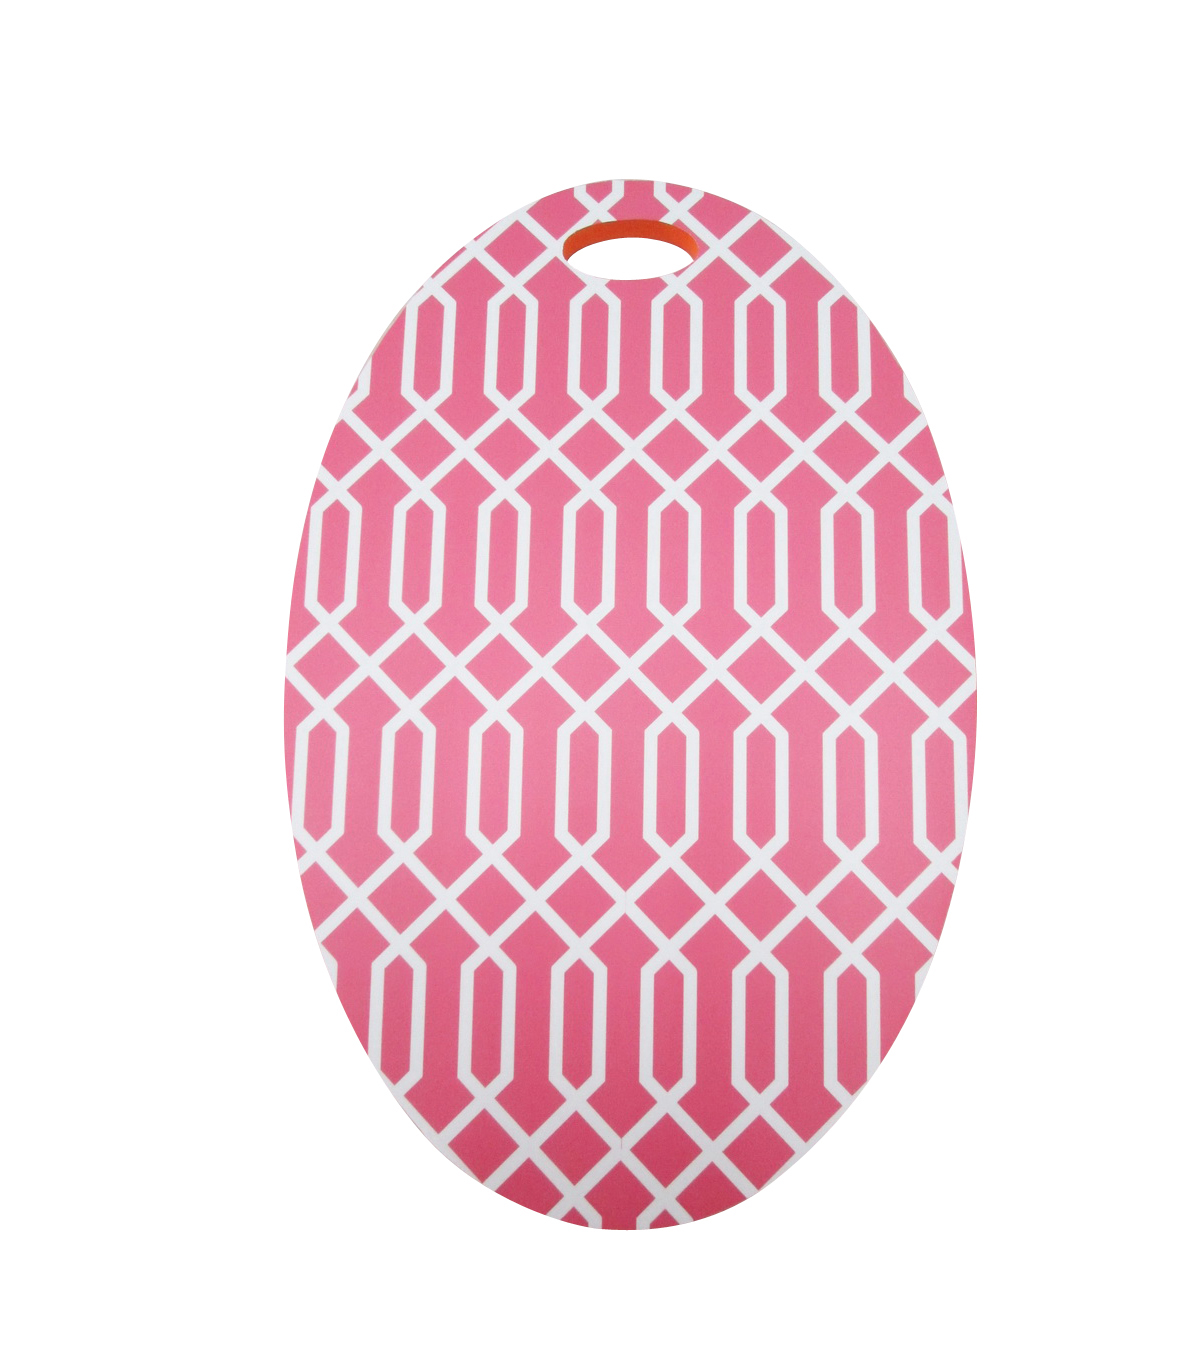 In The Garden Oval Kneeler-Pink Geometric Print